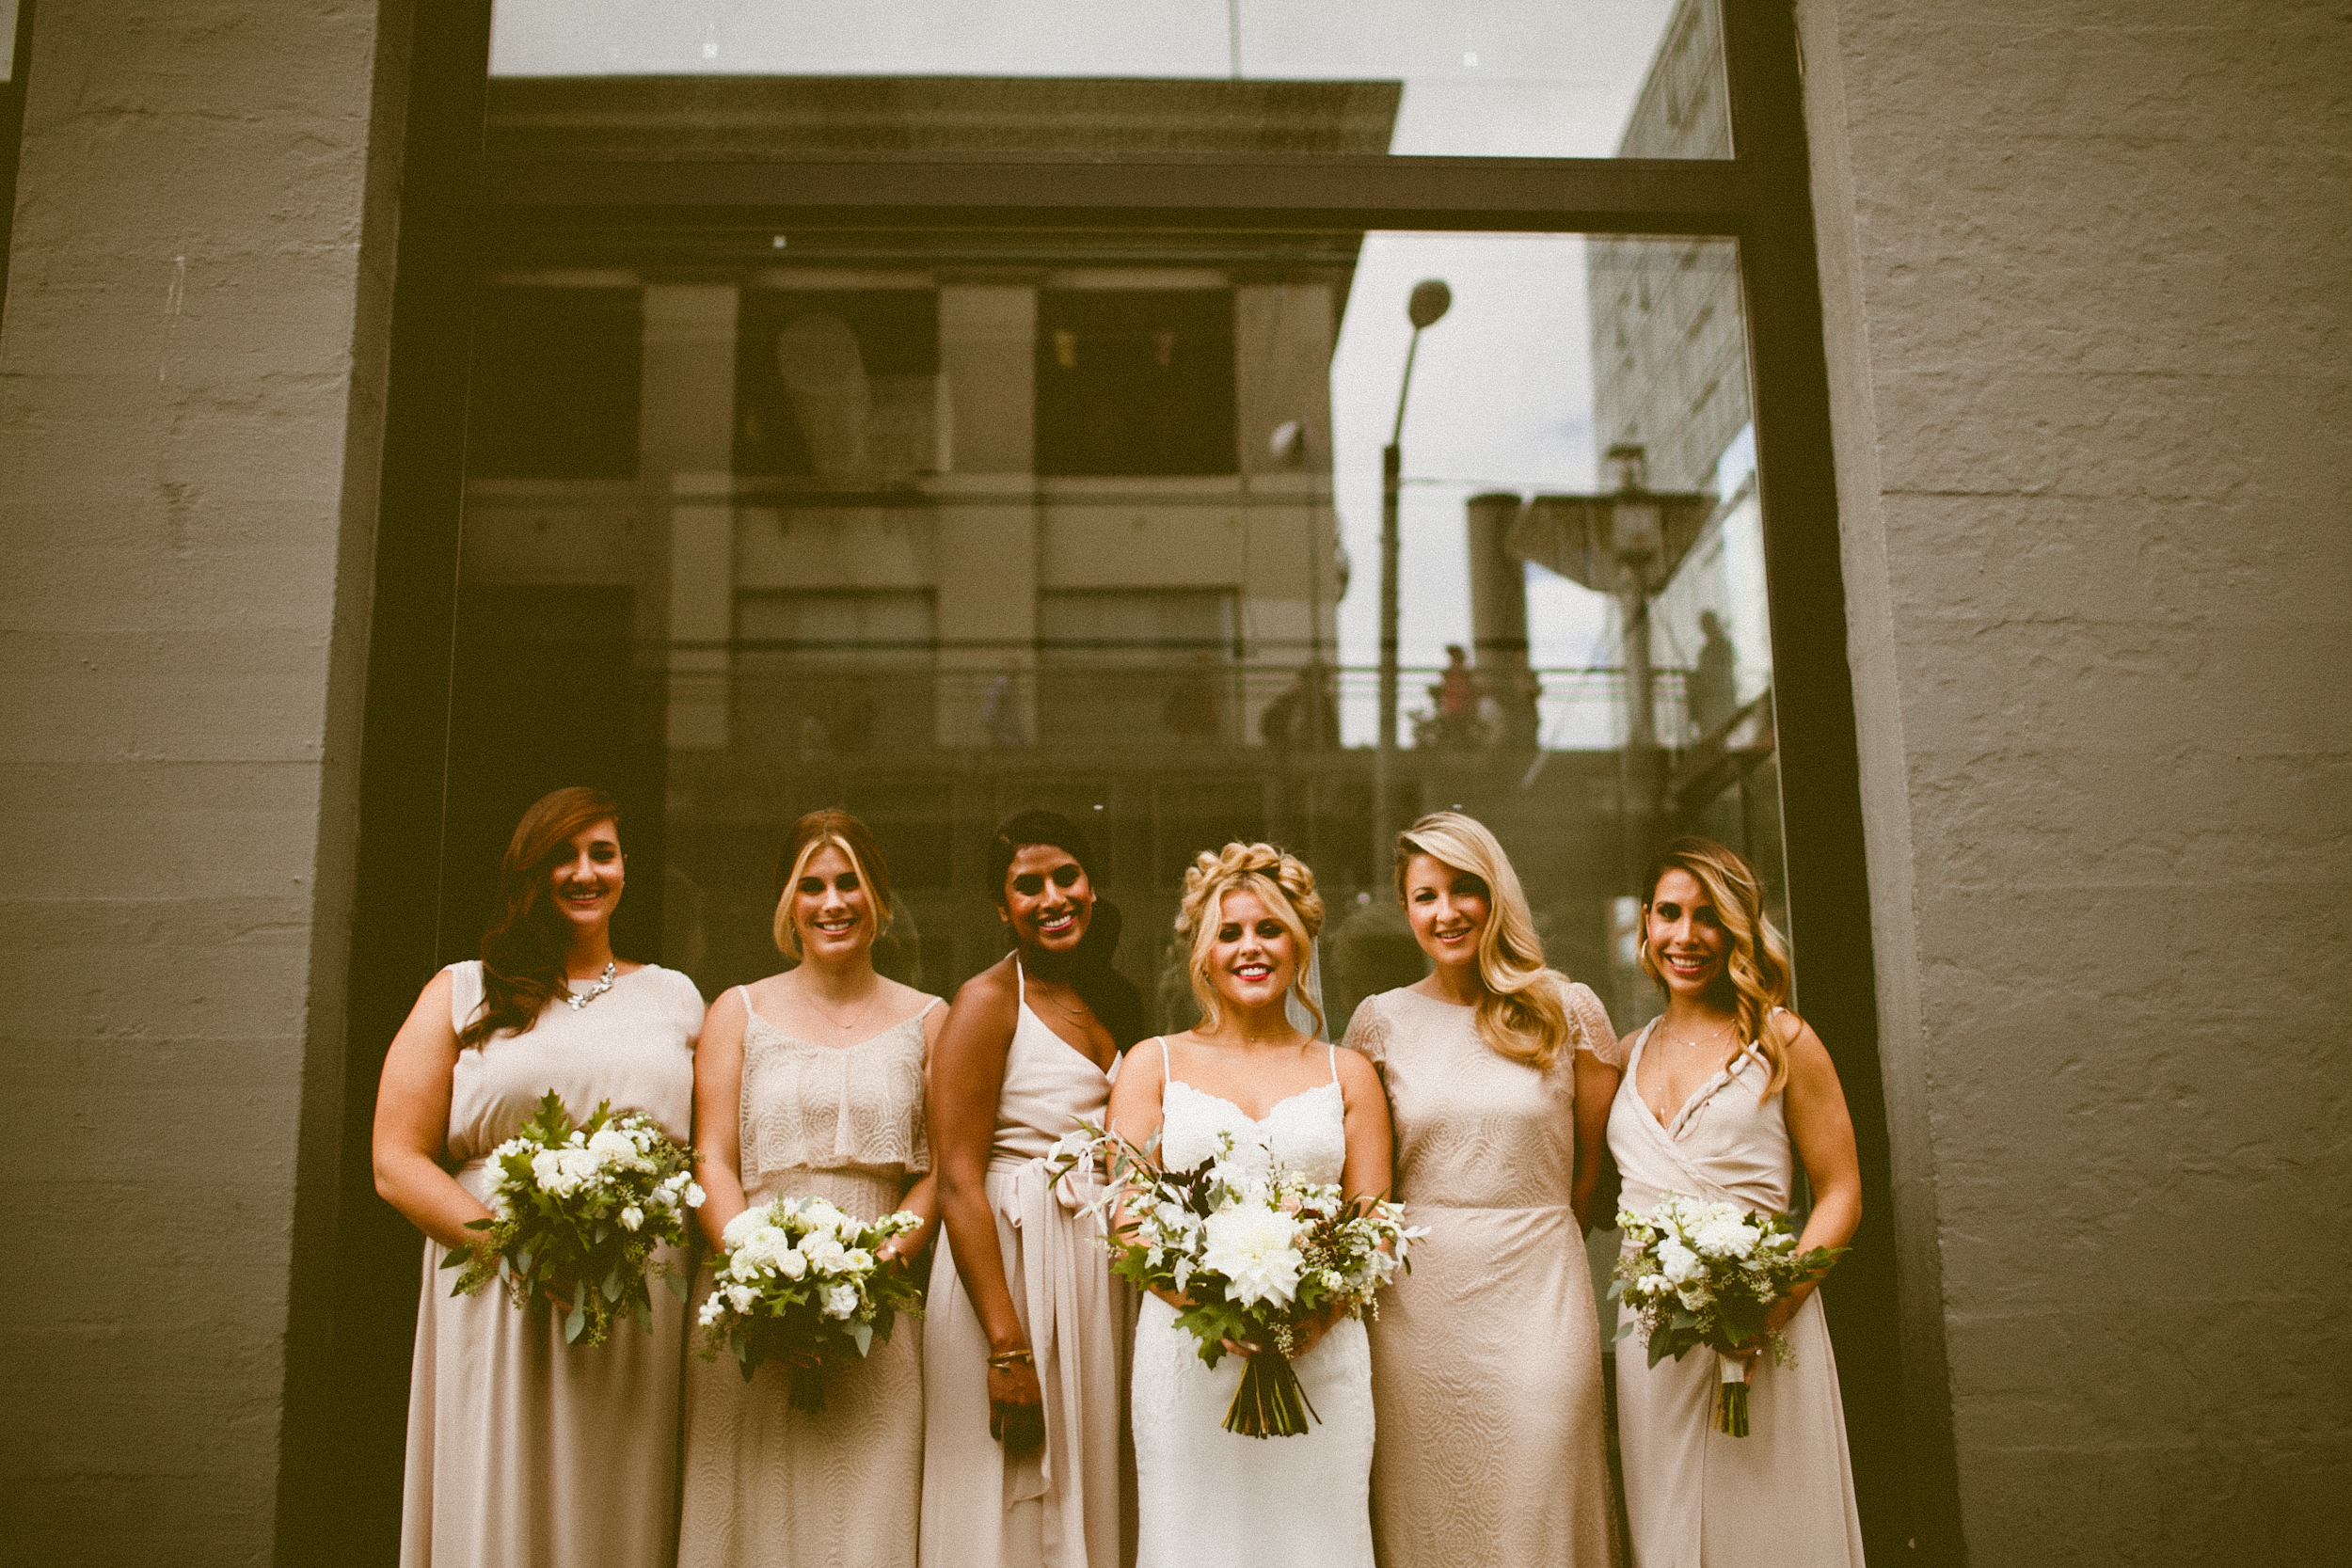 Sodo Park Wedding in Seattle | Neutral bridesmaids dresses with white bouquets with greenery | Perfectly Posh Events, Seattle Wedding Planner | Andria Lindquist Photography | Botanique